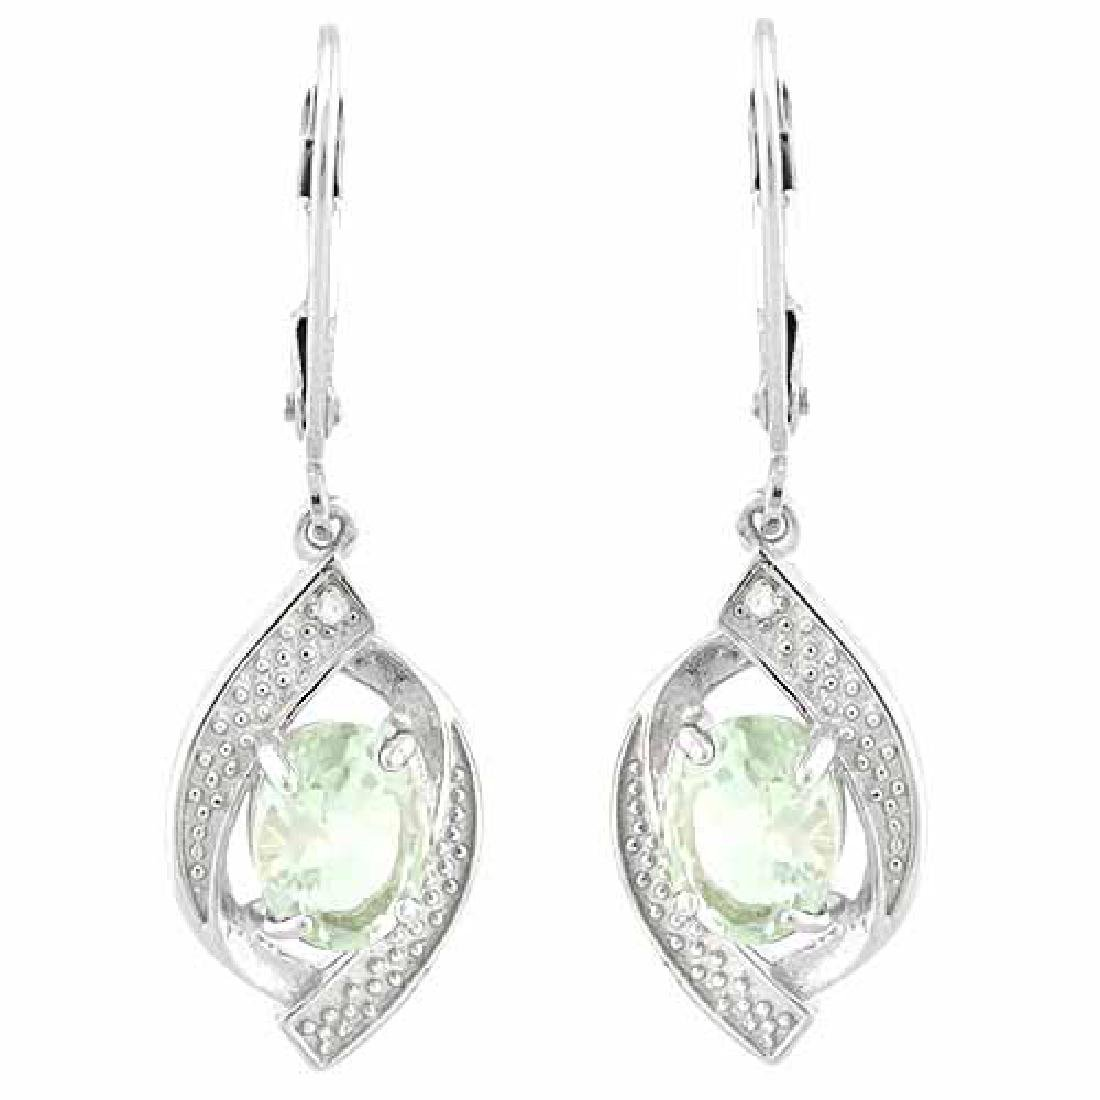 1 CARAT GREEN AMETHYST & DIAMOND 925 STERLING SILVER EA